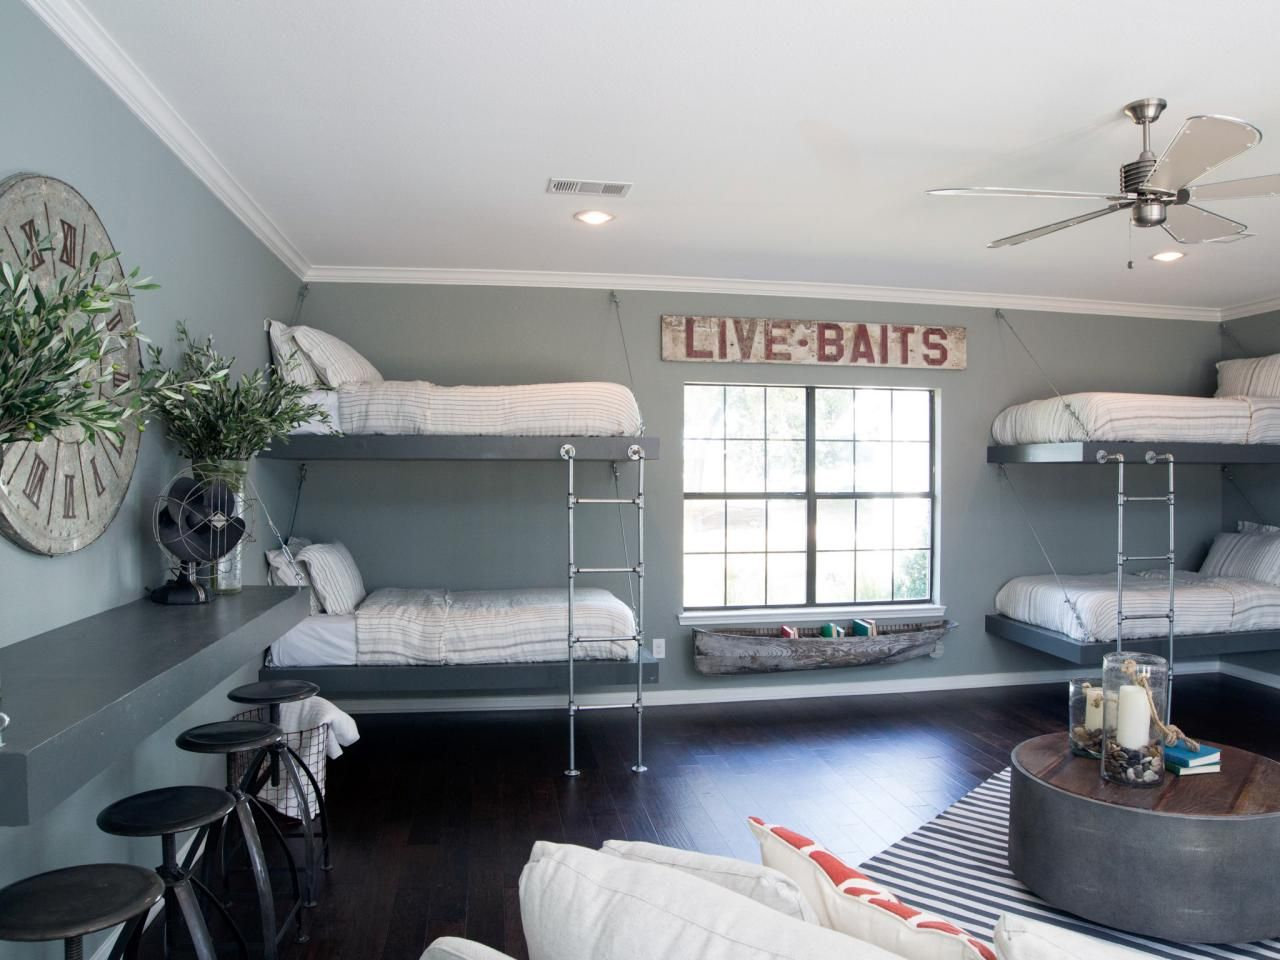 Kids' Bunk Bed And Bunkroom Design Ideas  Joanna Gaines Diy Unique Interior Bedroom Design Furniture Review